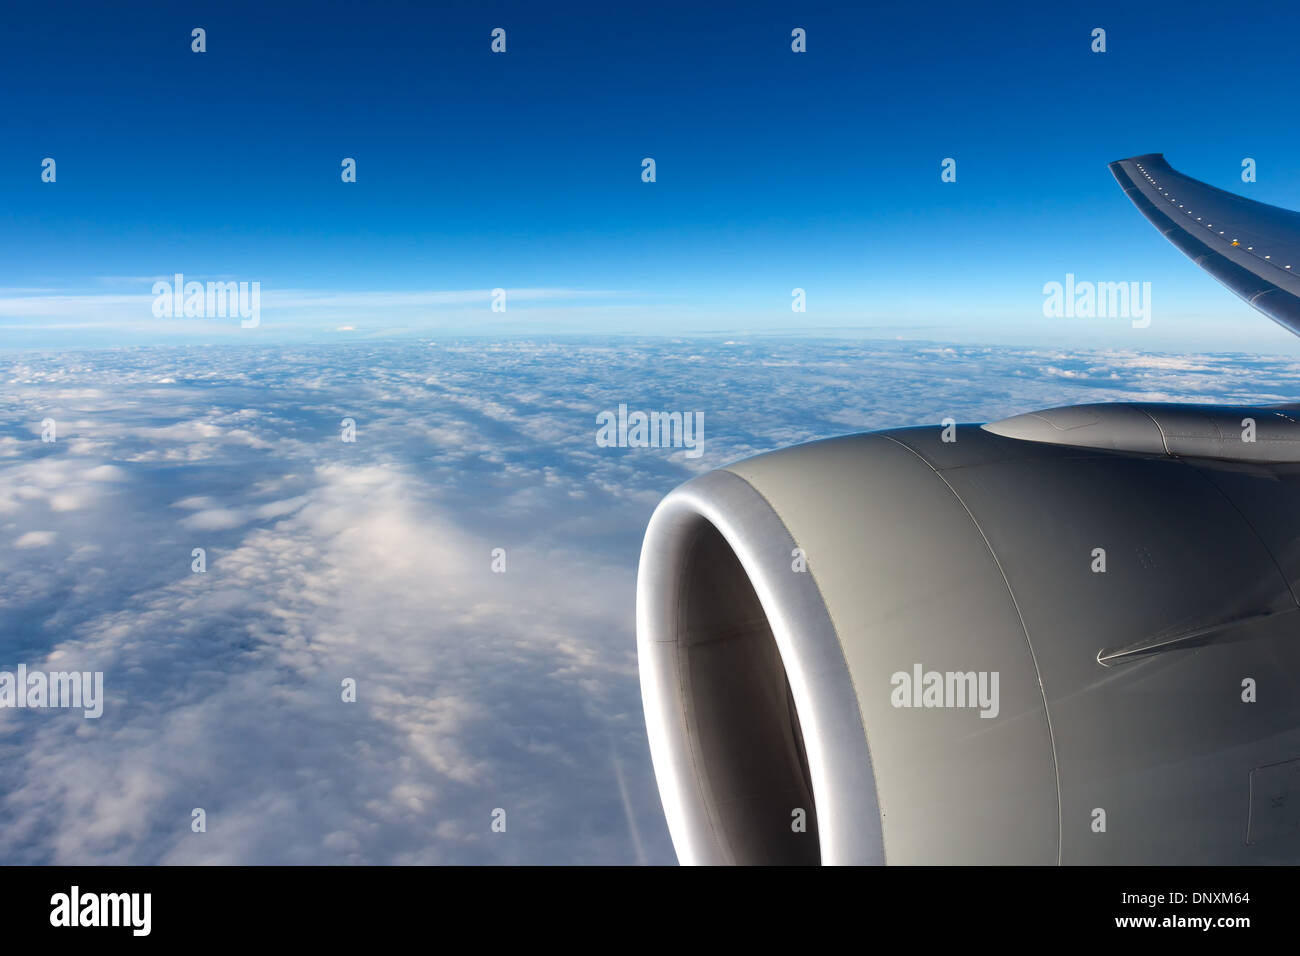 Clouds in the sky through aircraft window Stock Photo